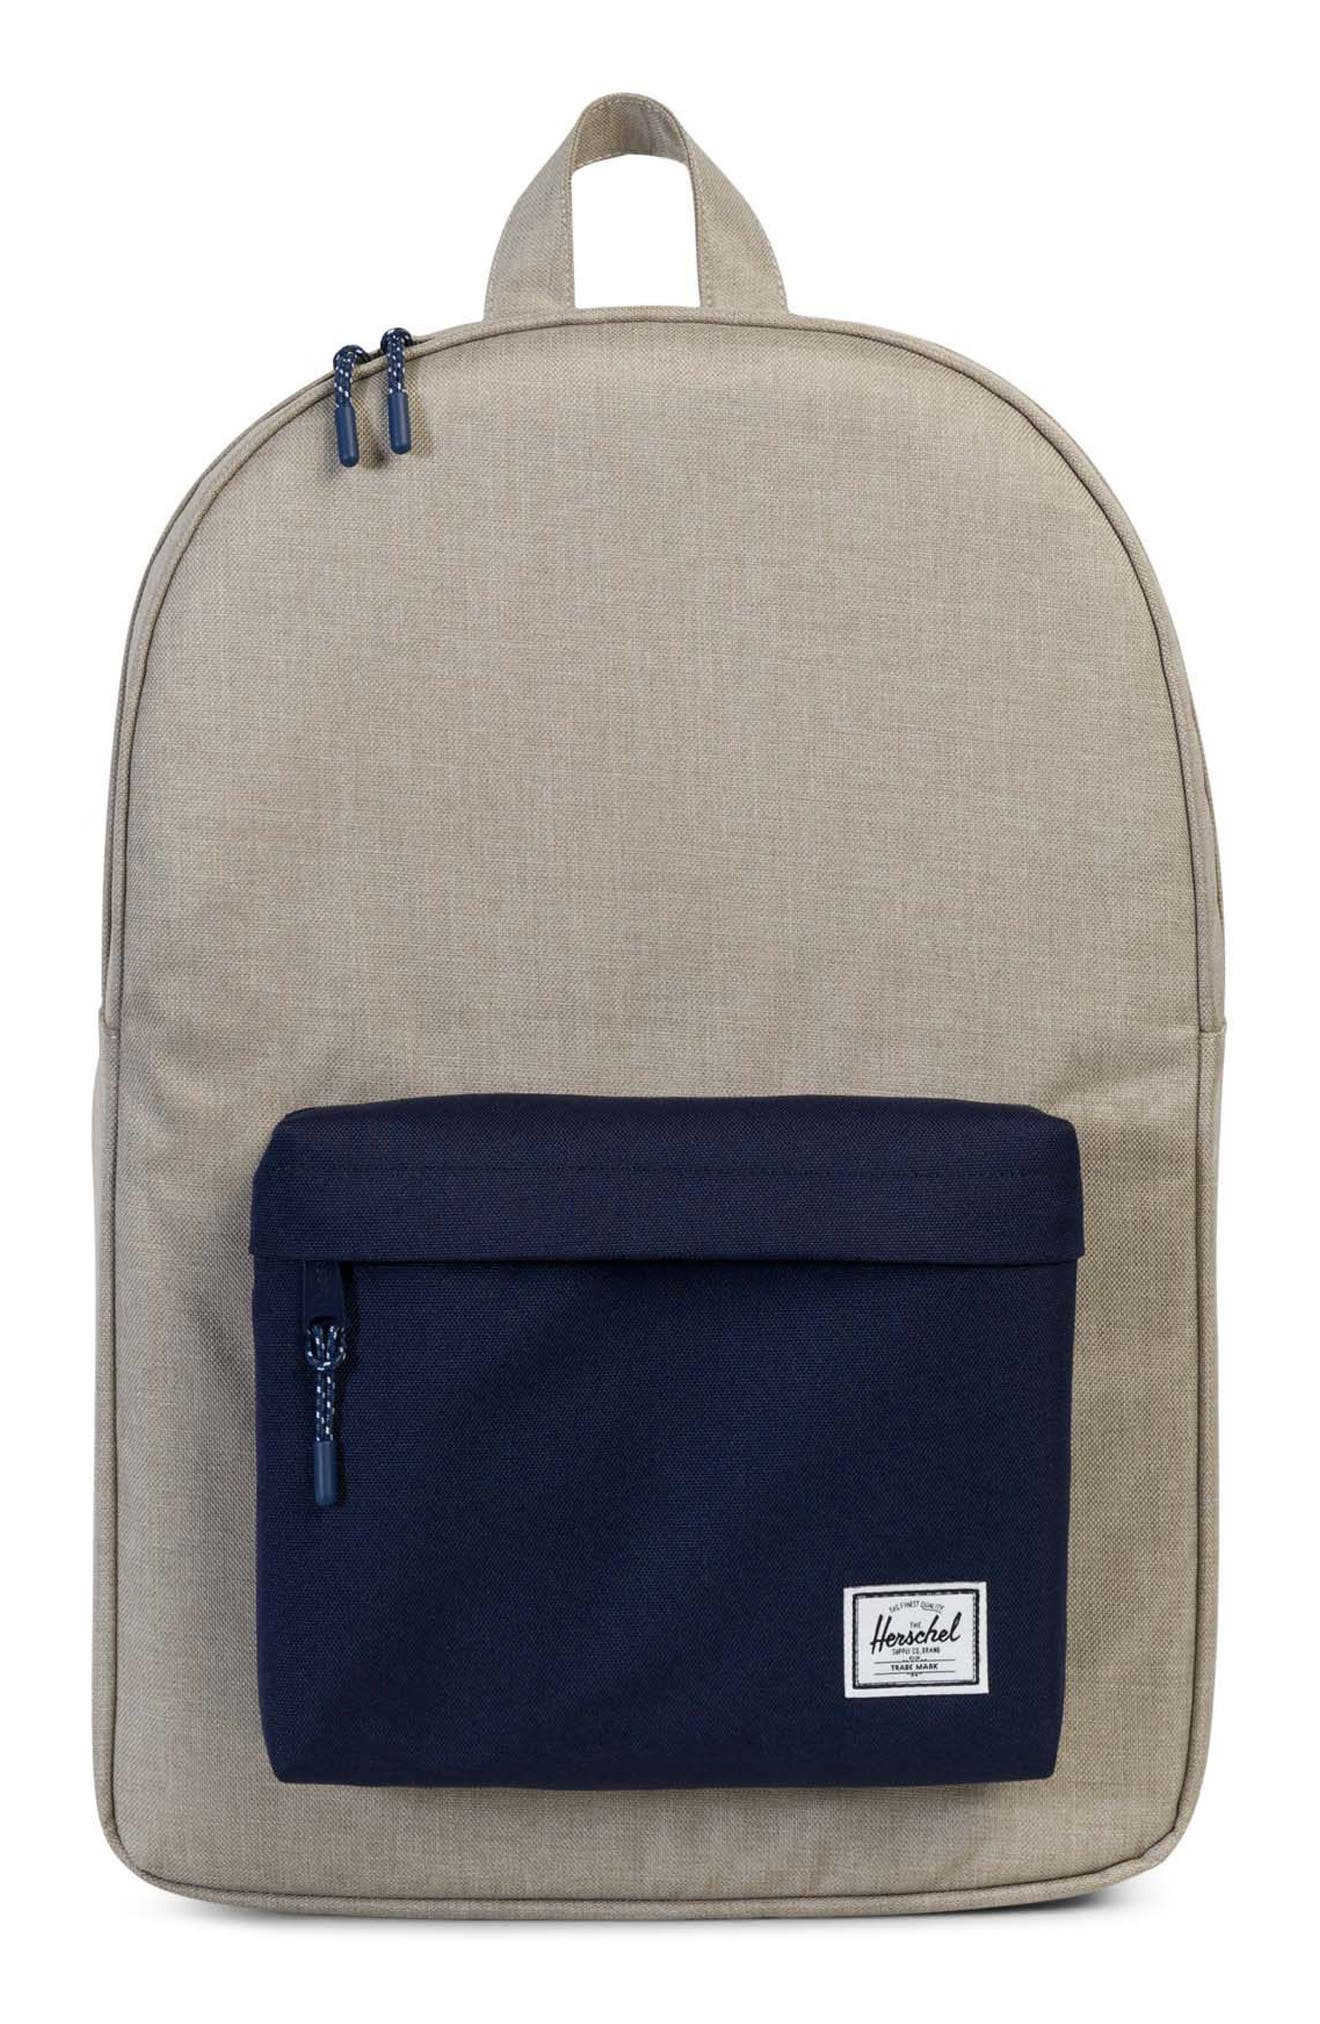 Alternate Image 1 Selected - Herschel Supply Co. Classic Backpack